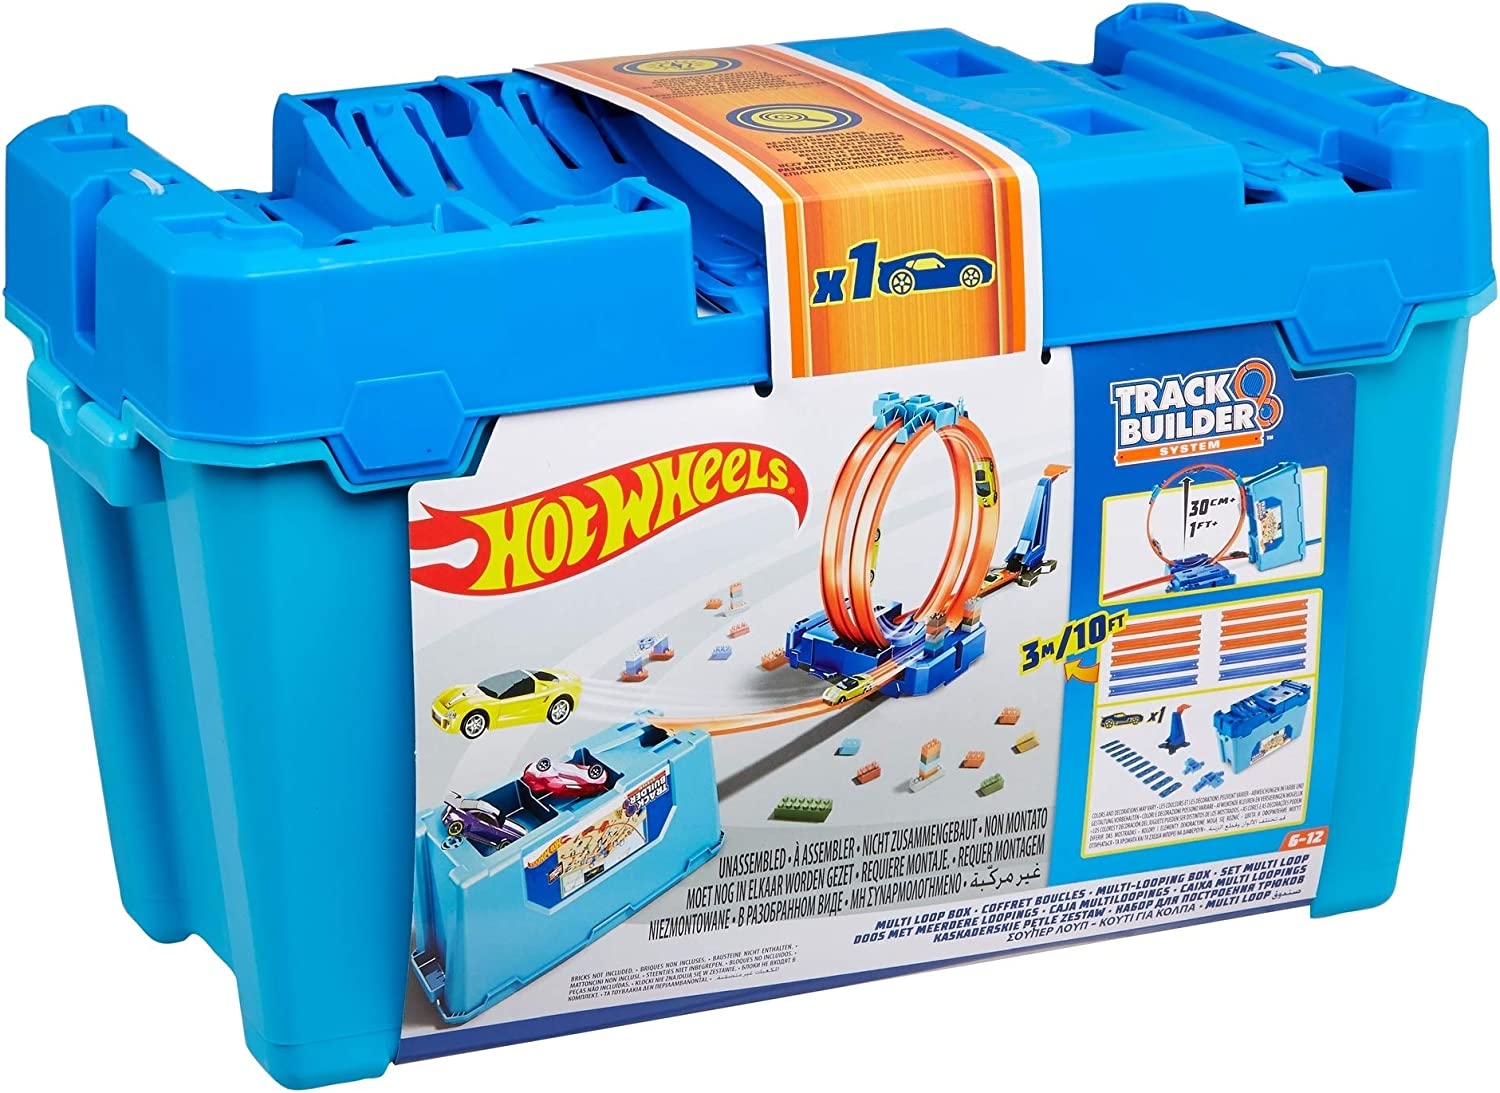 Hot Wheels Track Builder Stunt Box Connectable Race Kit Kids Activity Playset